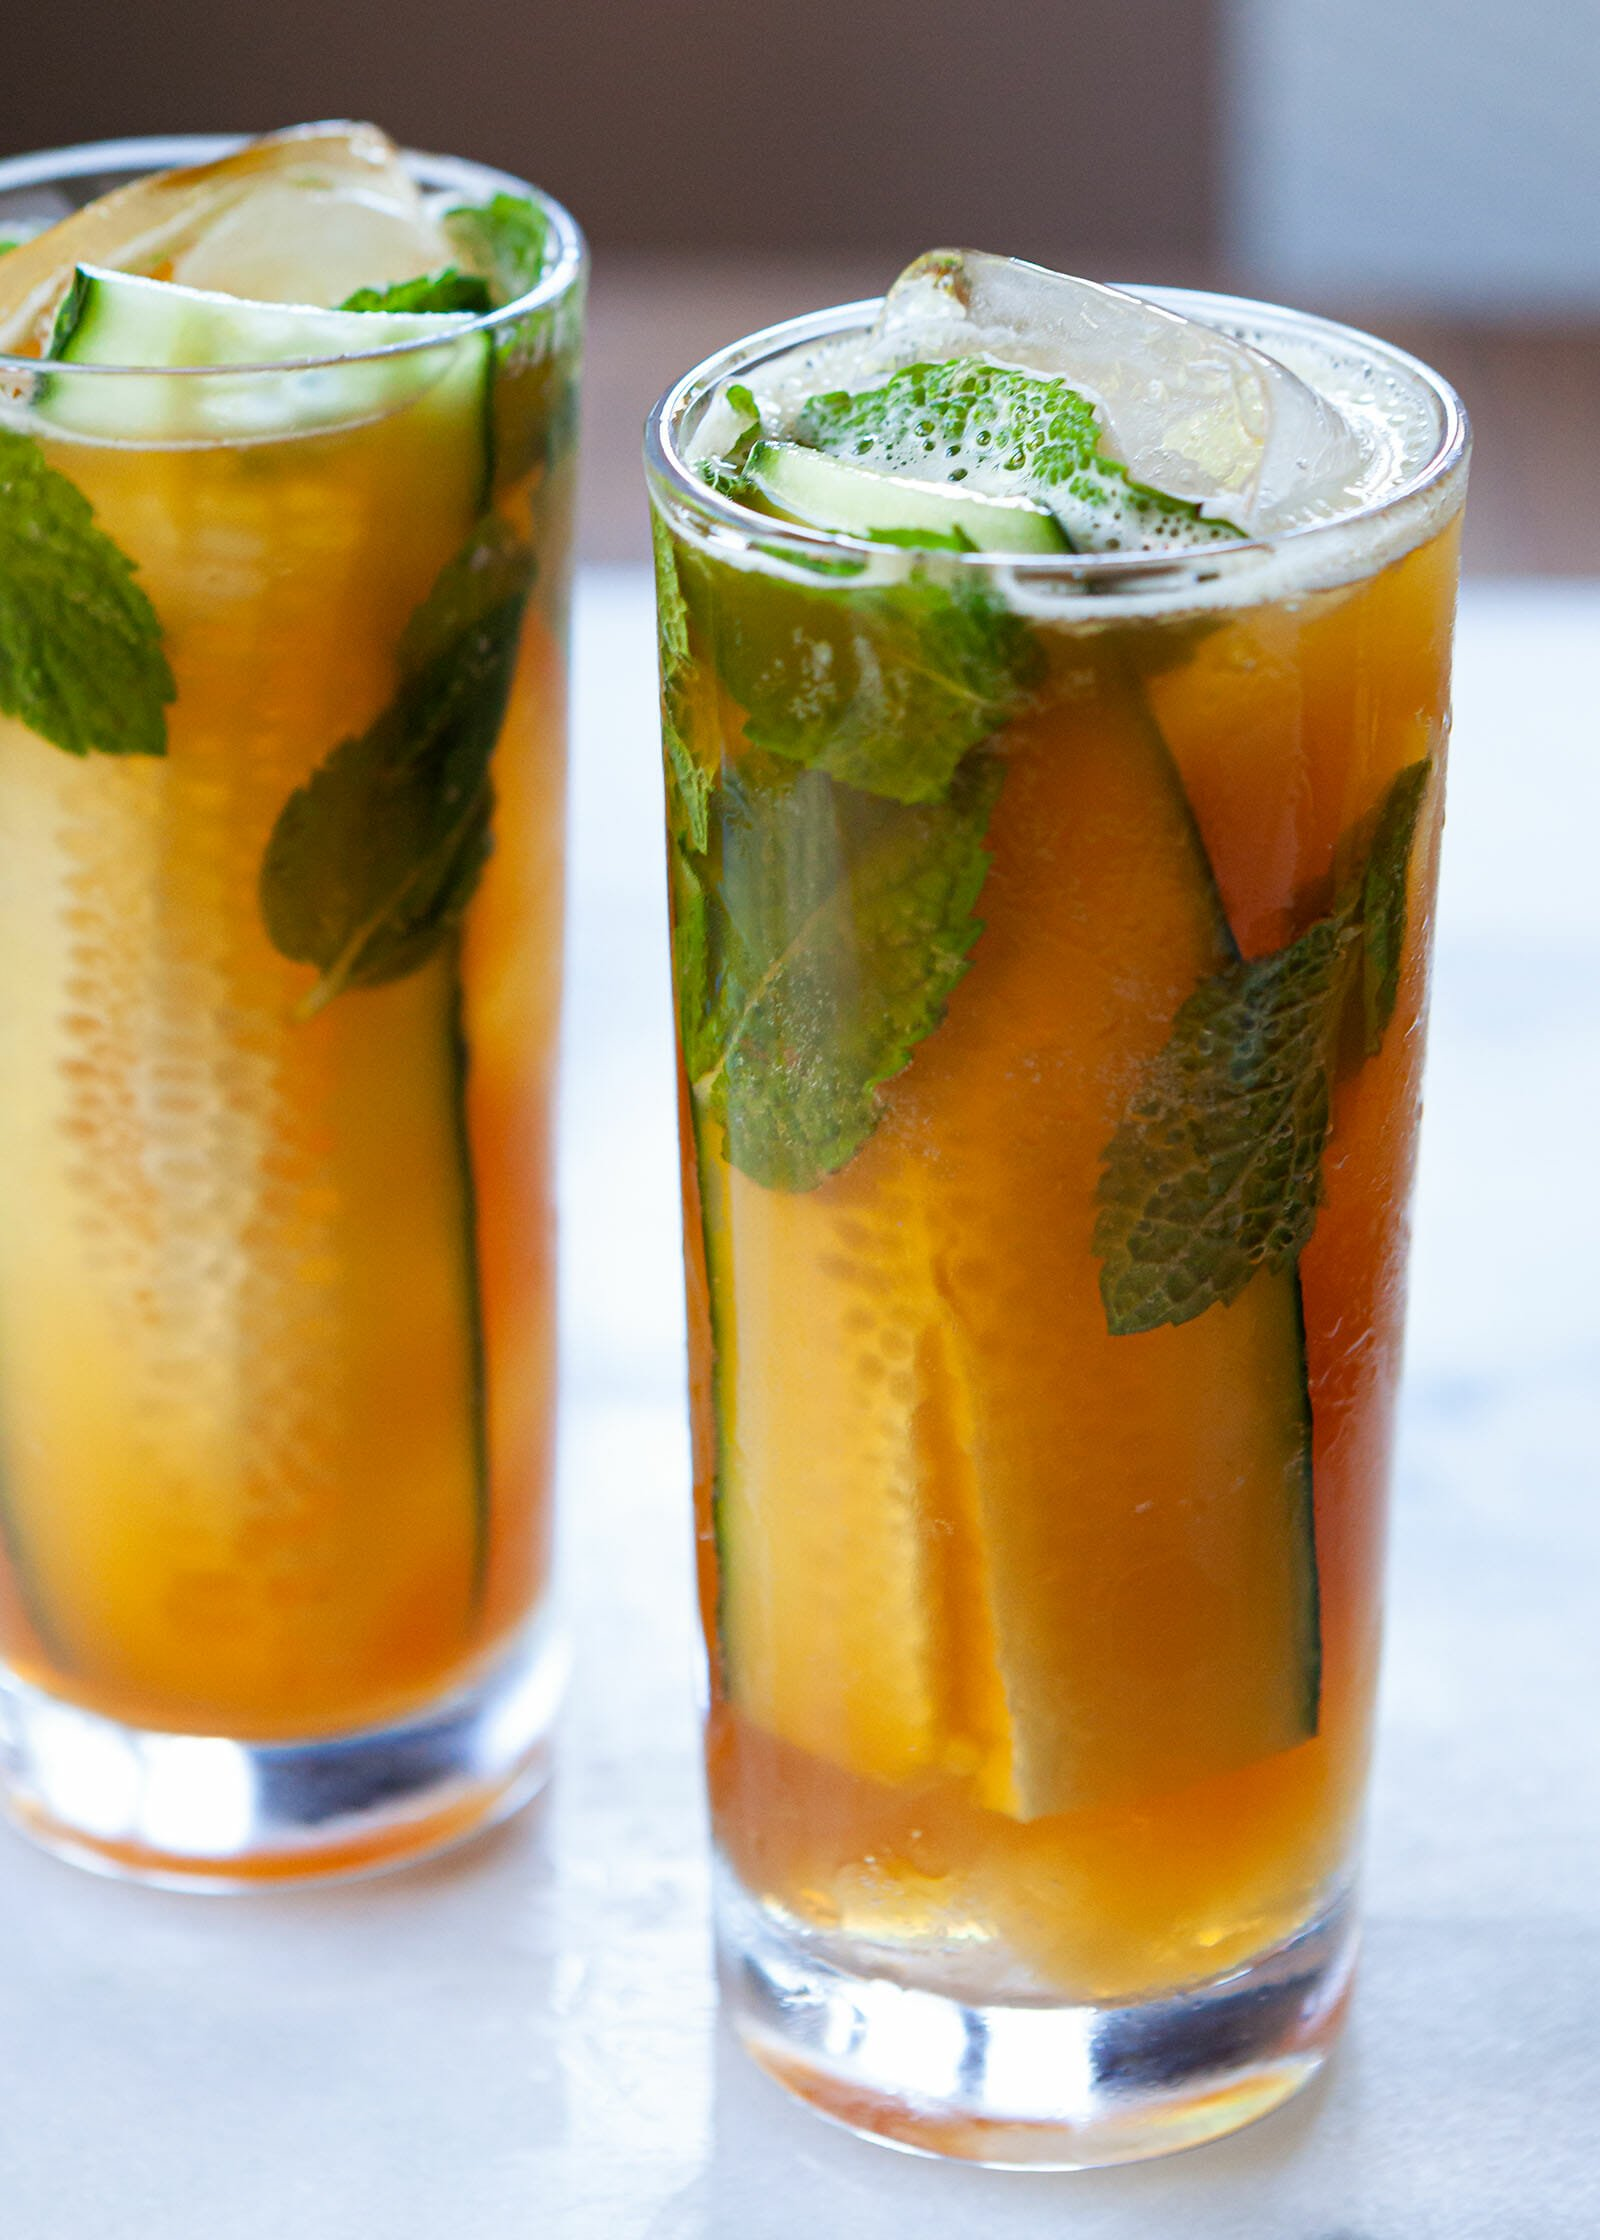 Two highball glasses with Pimm's cup recipe in each. Mint leaves, cucumbers and ice are visible in the glasses.